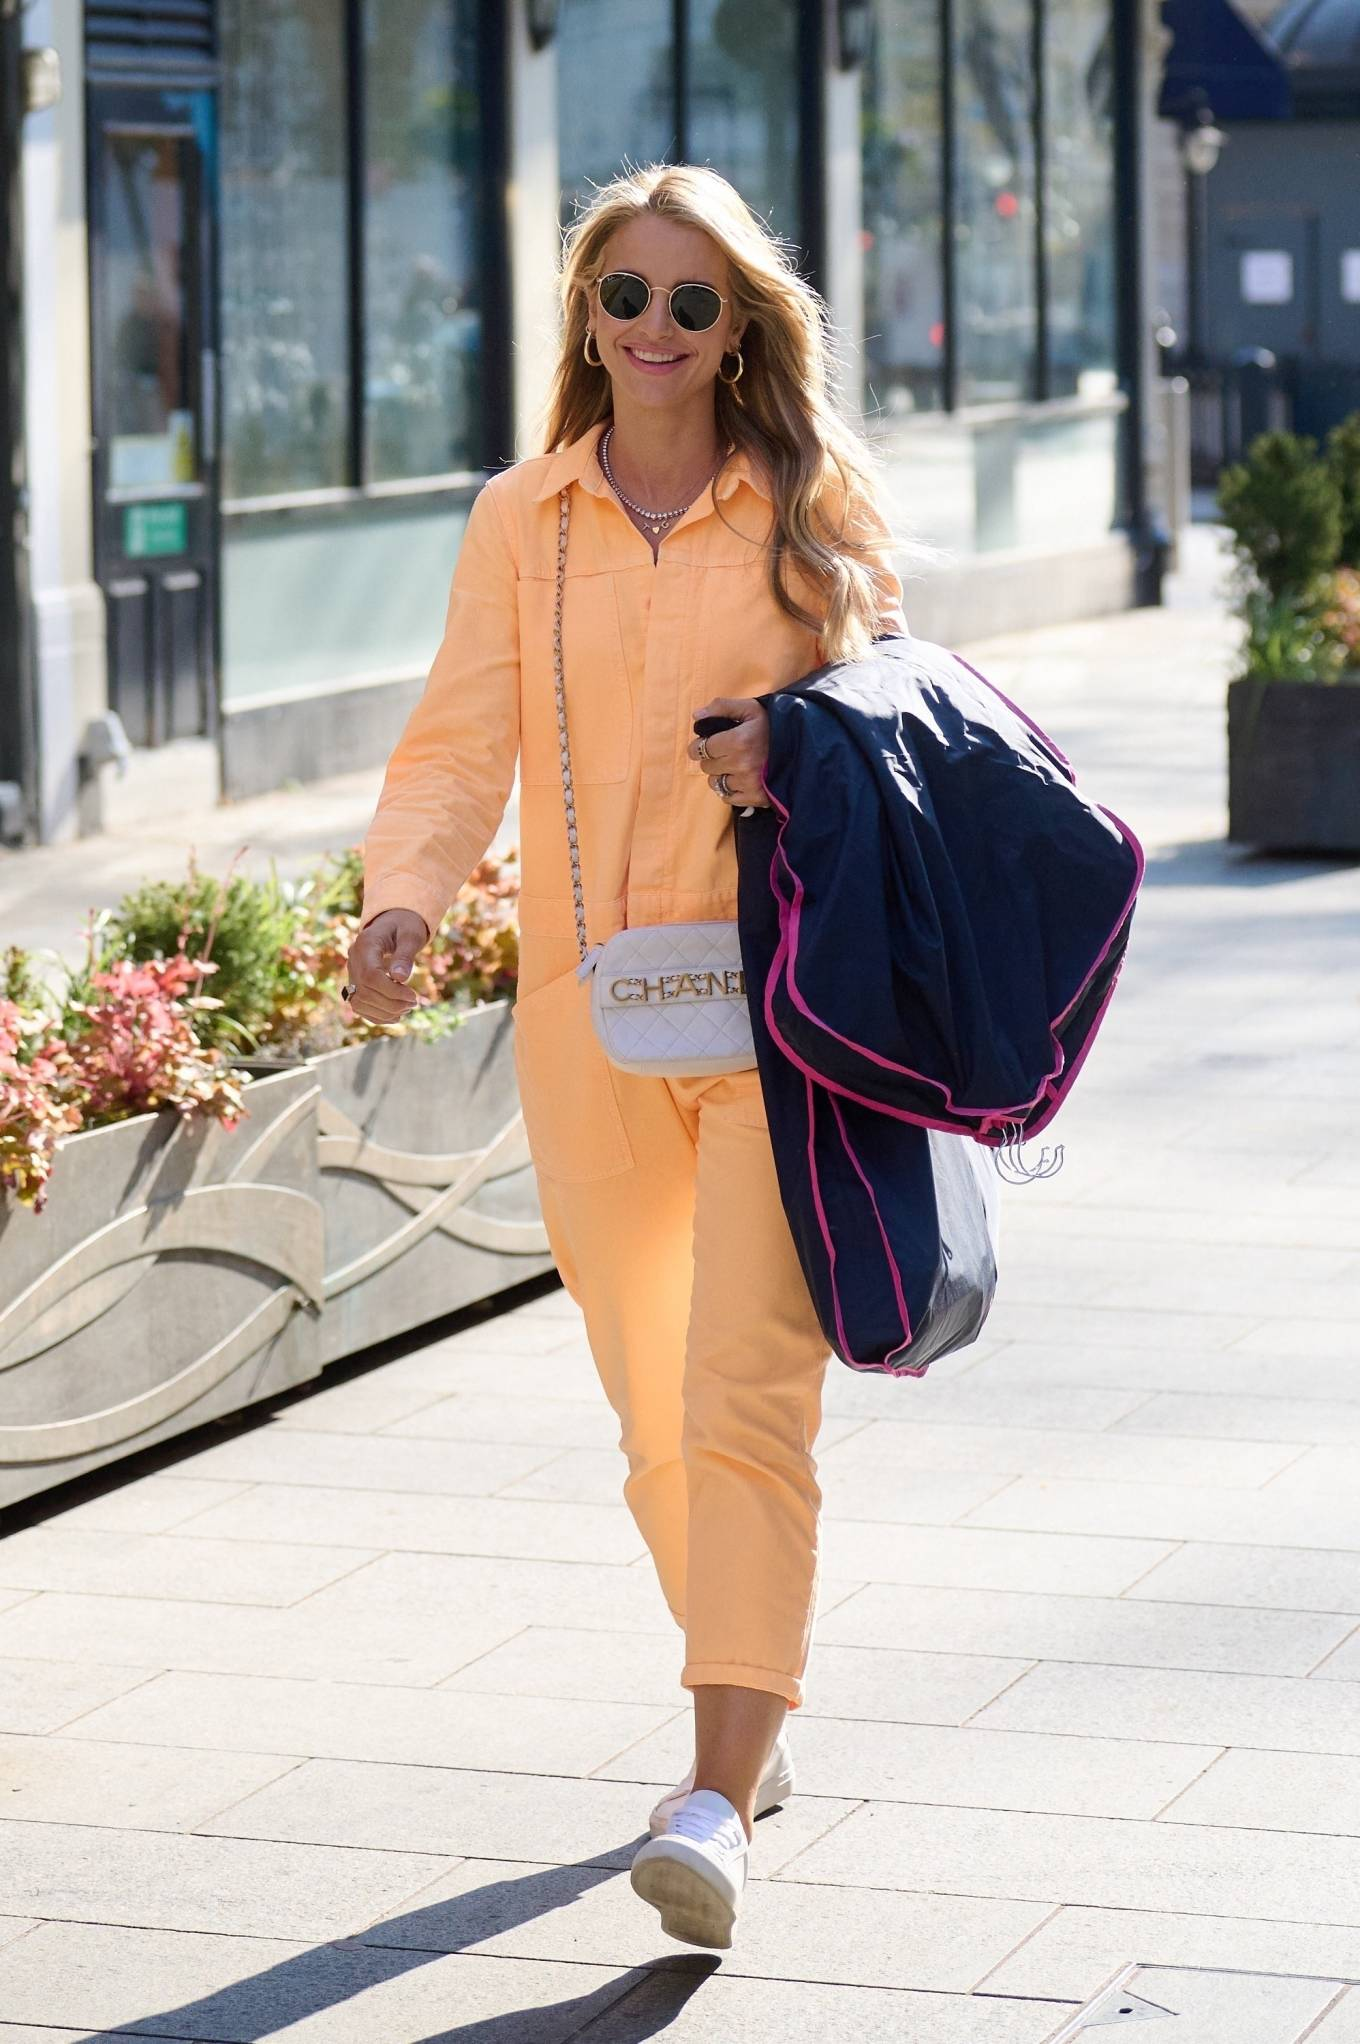 Vogue Williams 2021 : Vogue Williams – Pictured arriving at the Global studios in London-10